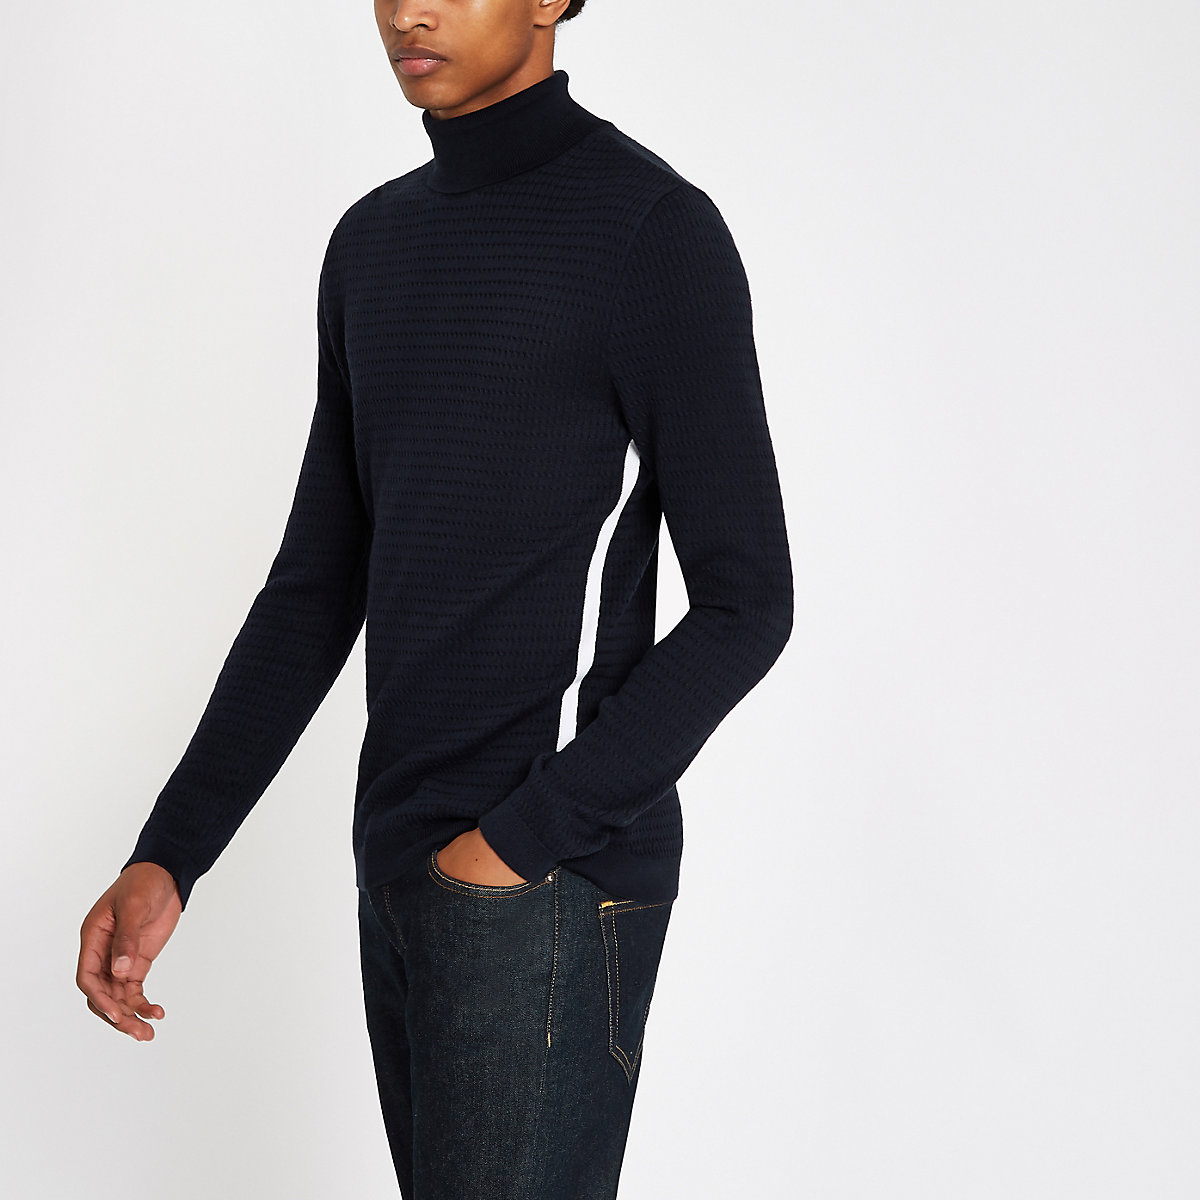 Navy knit roll neck slim fit sweater